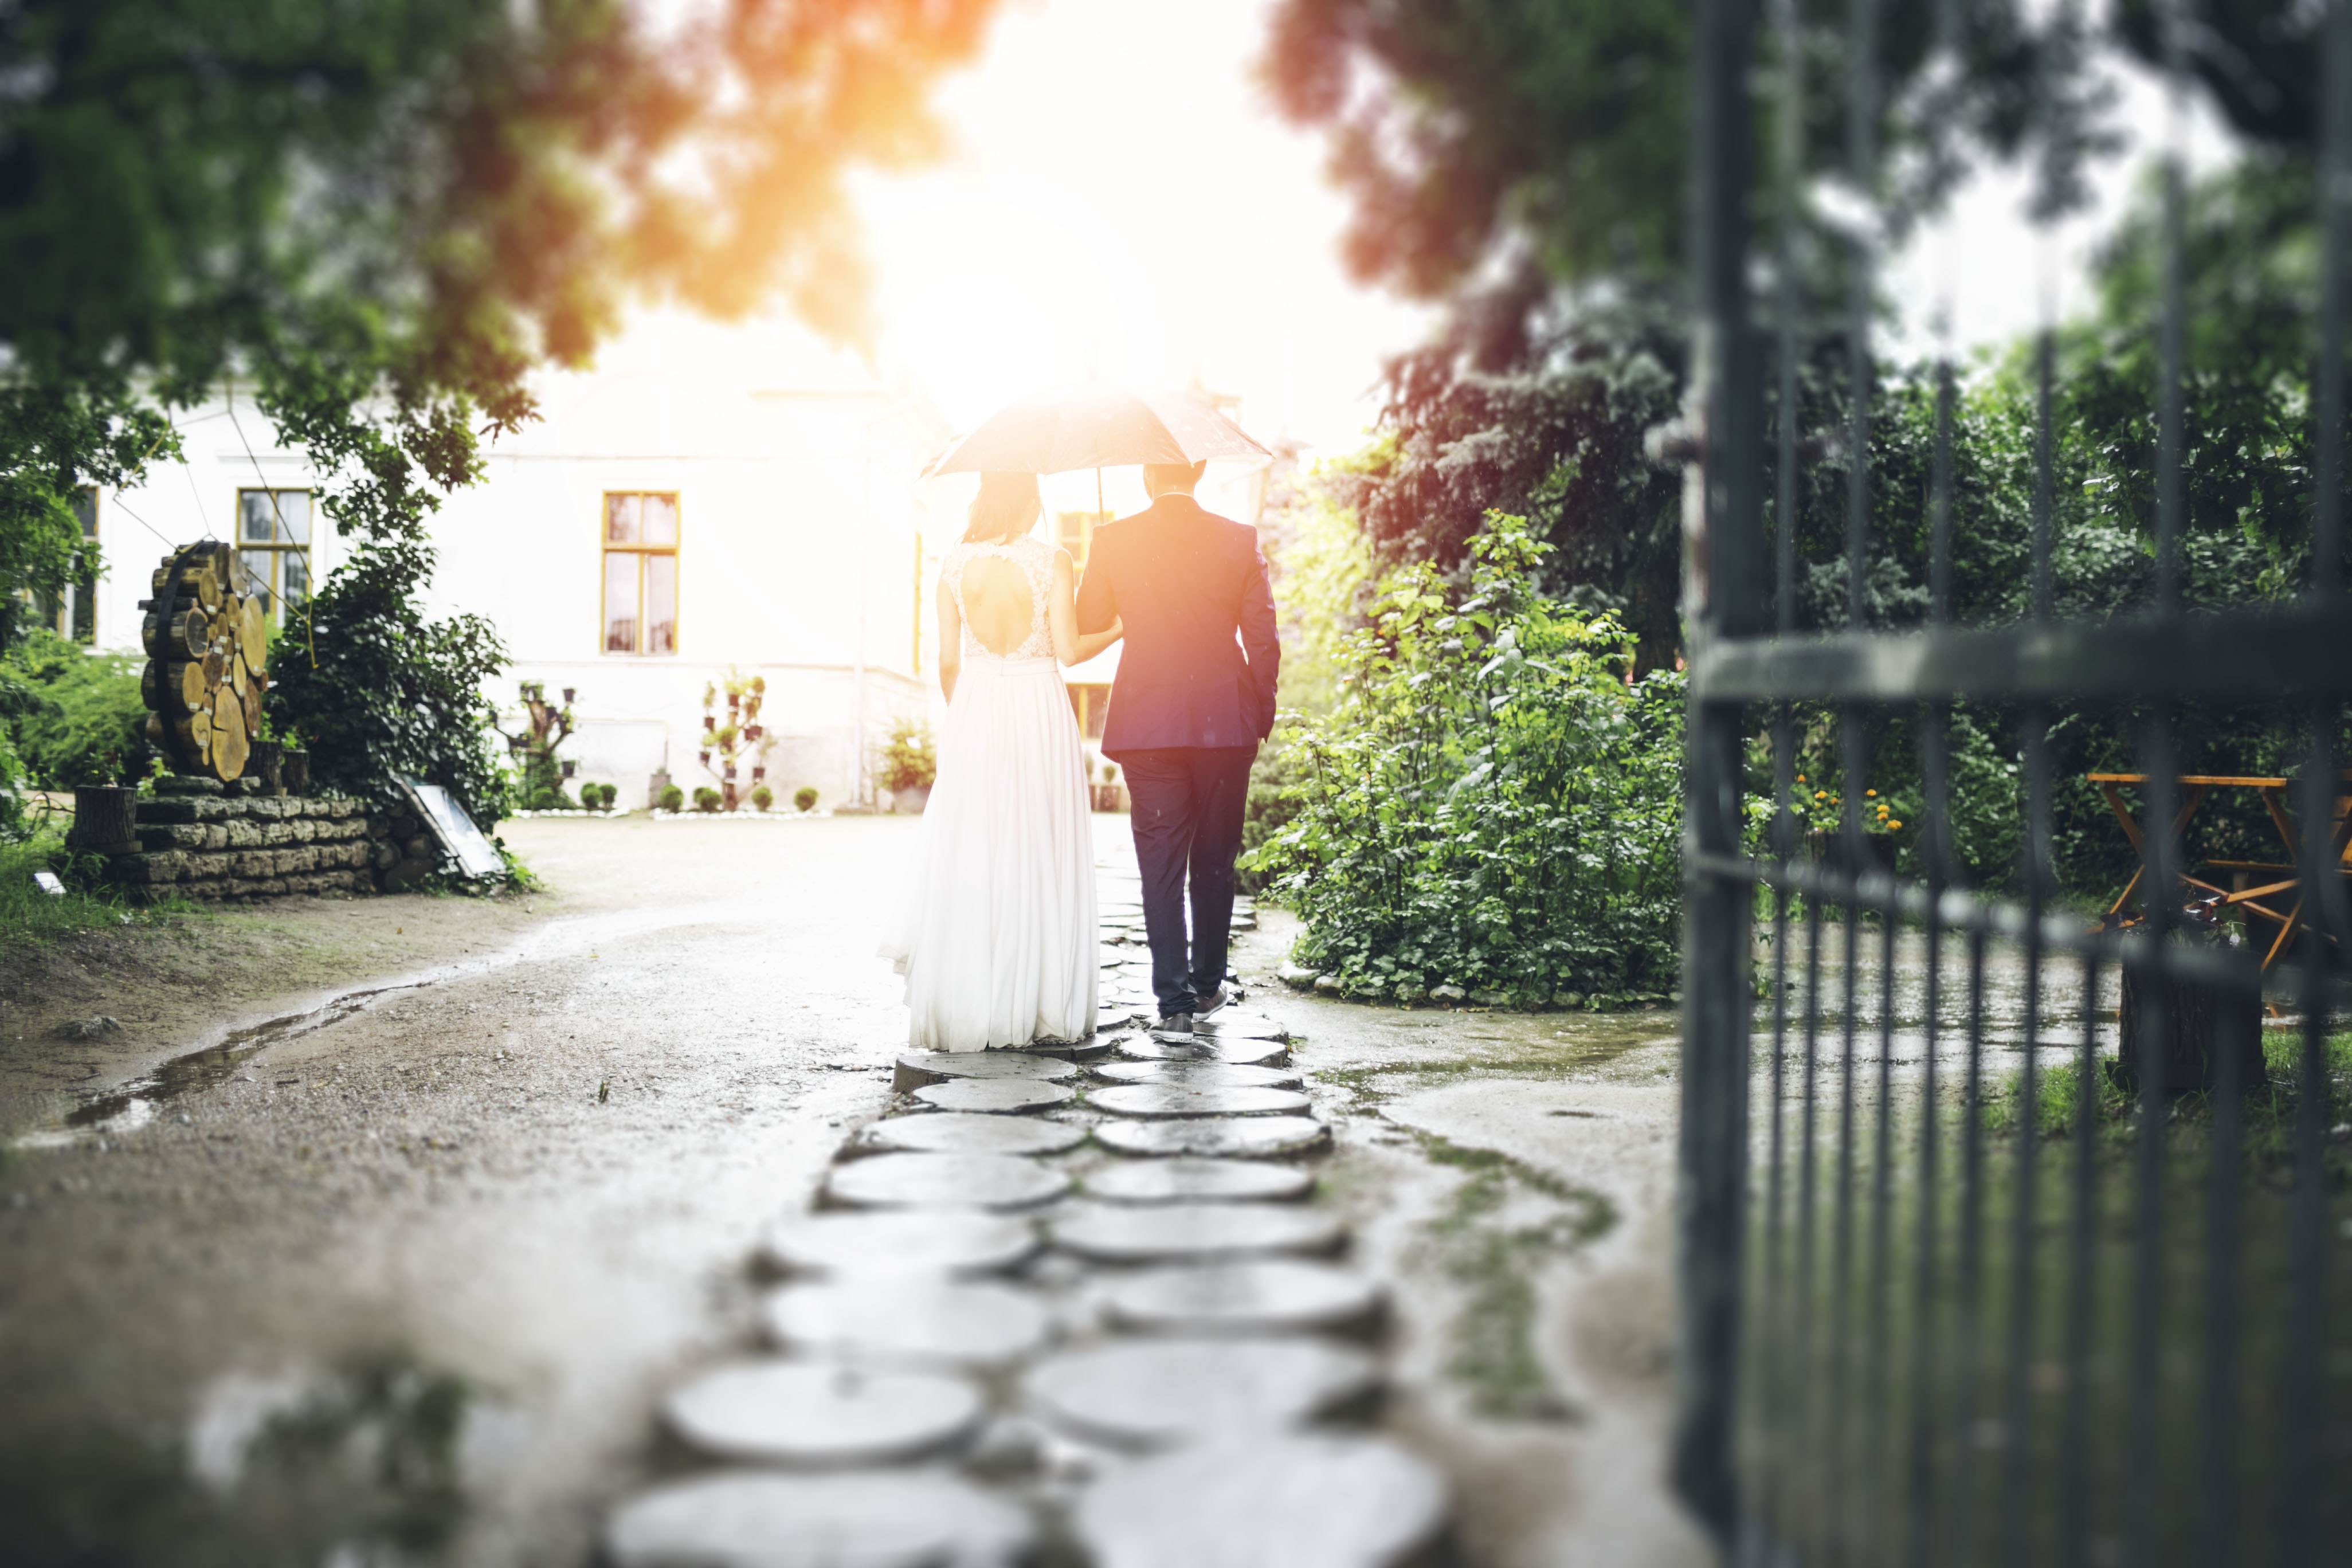 Bride and groom walking down a stone path holding an umbrella with light shining on them